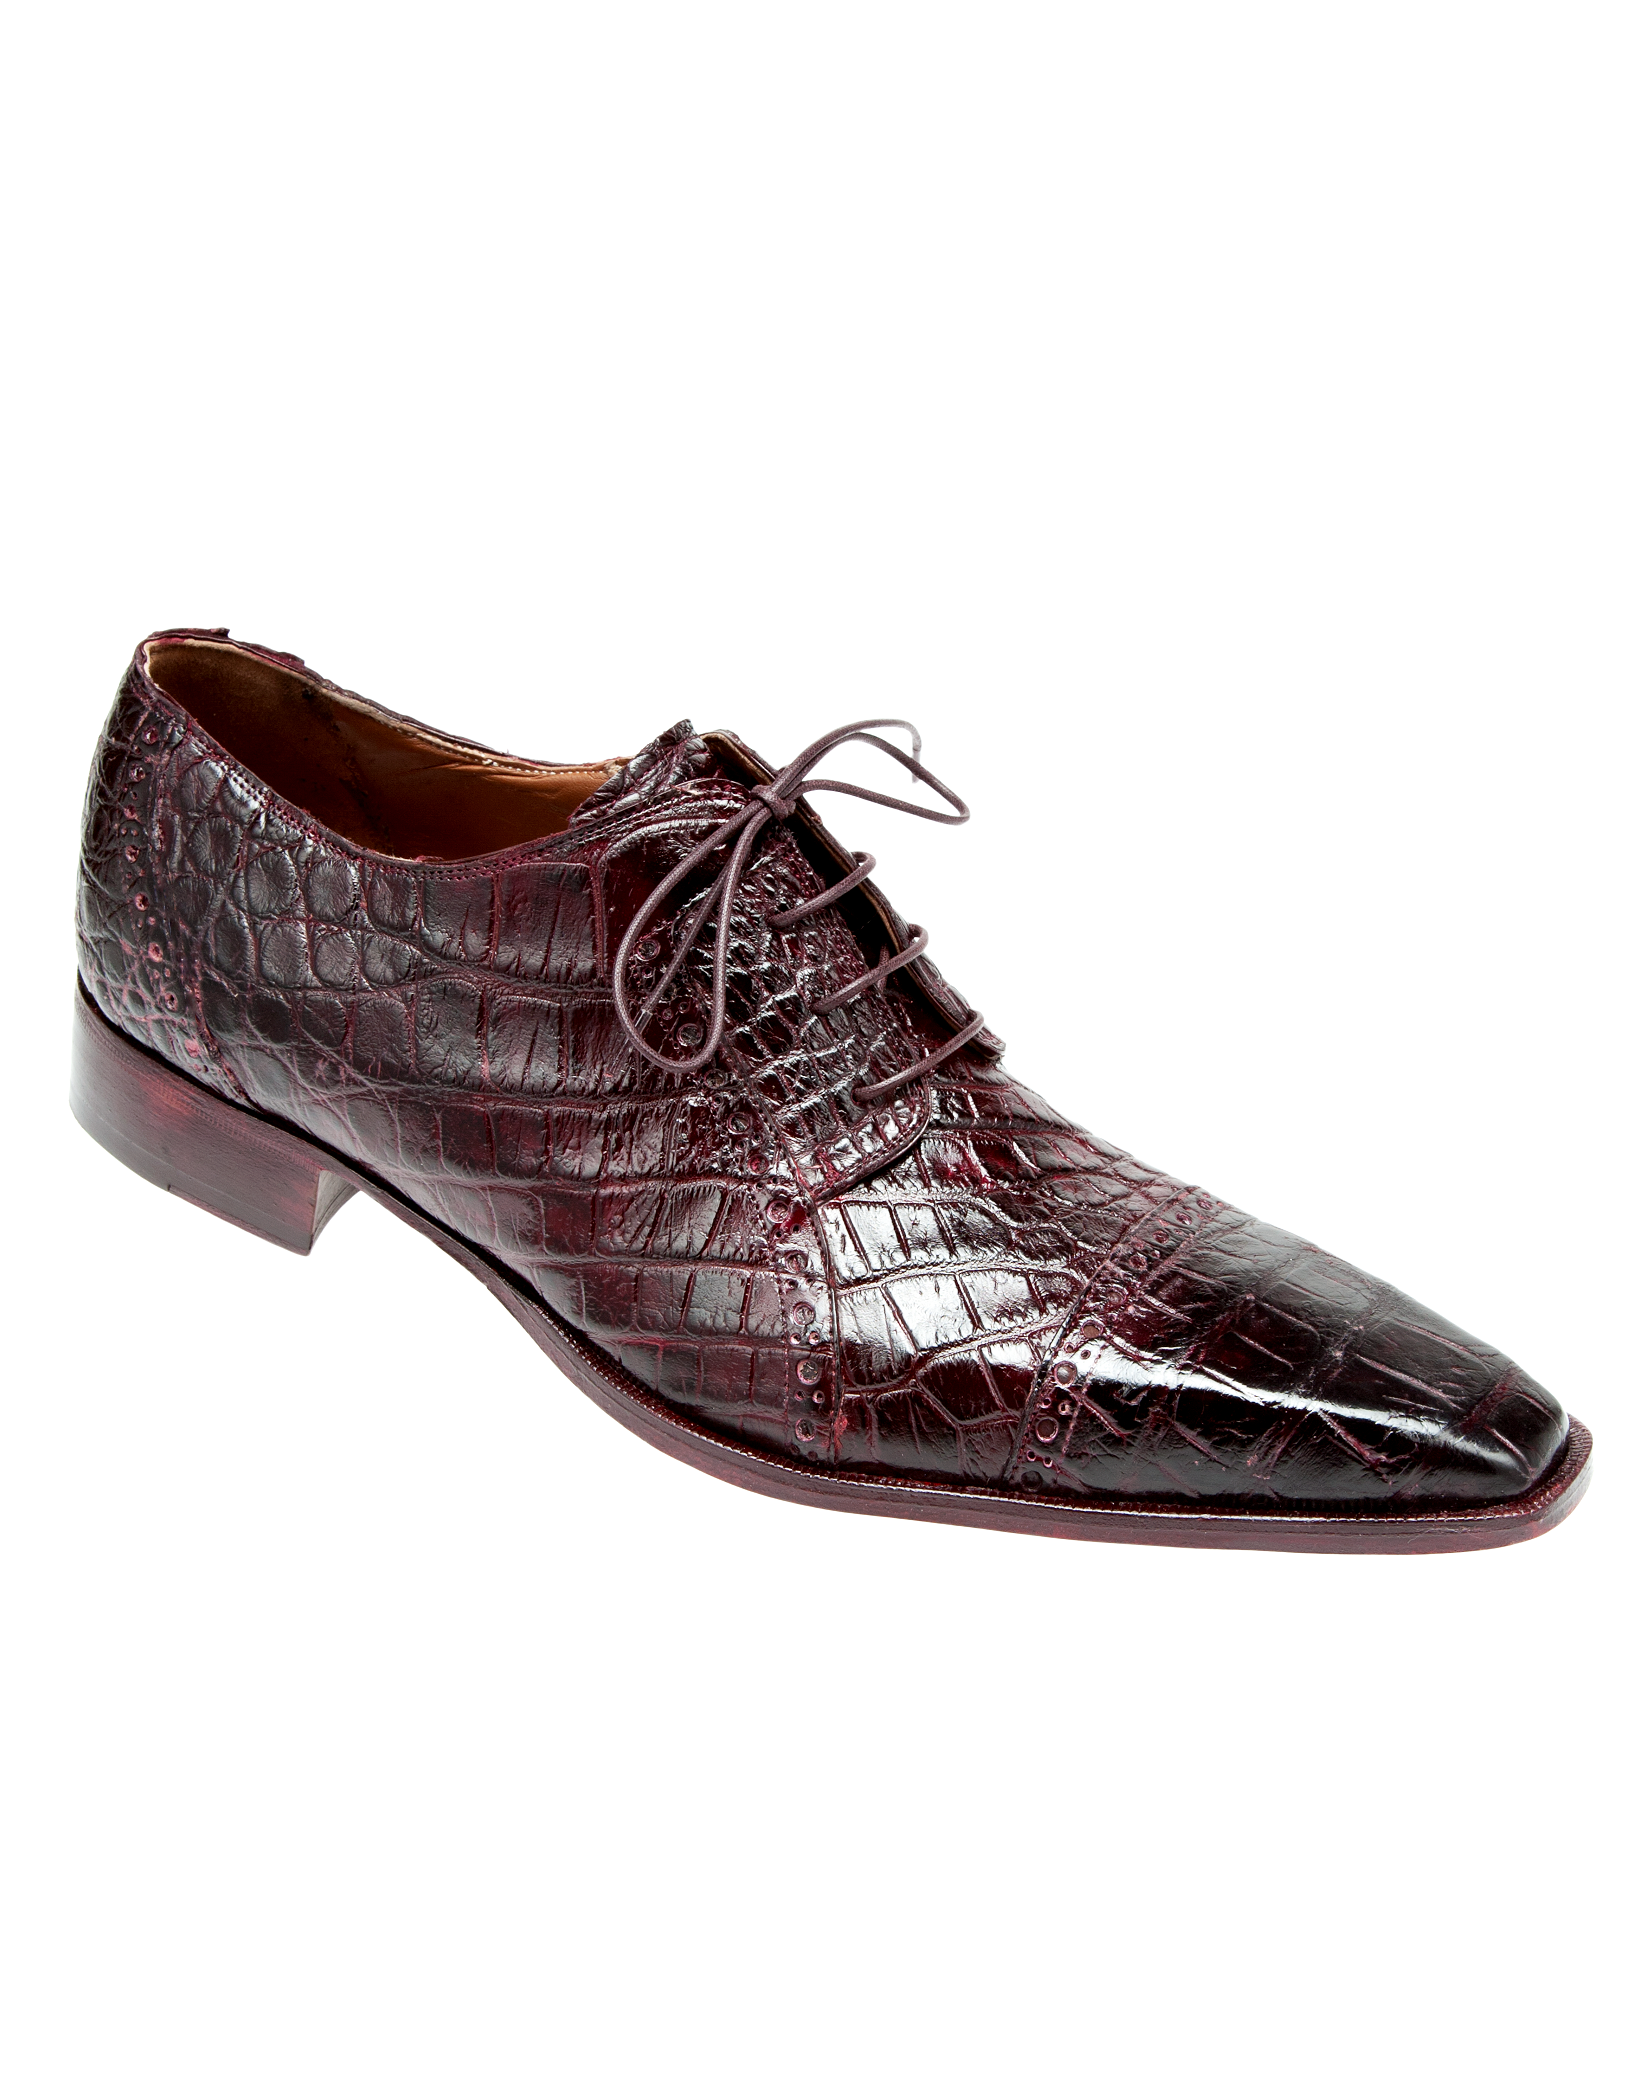 Mauri 1077 men shoes [Mauri1077Int] : Exotic Skin Shoes, Alligator shoes,  Crocodile